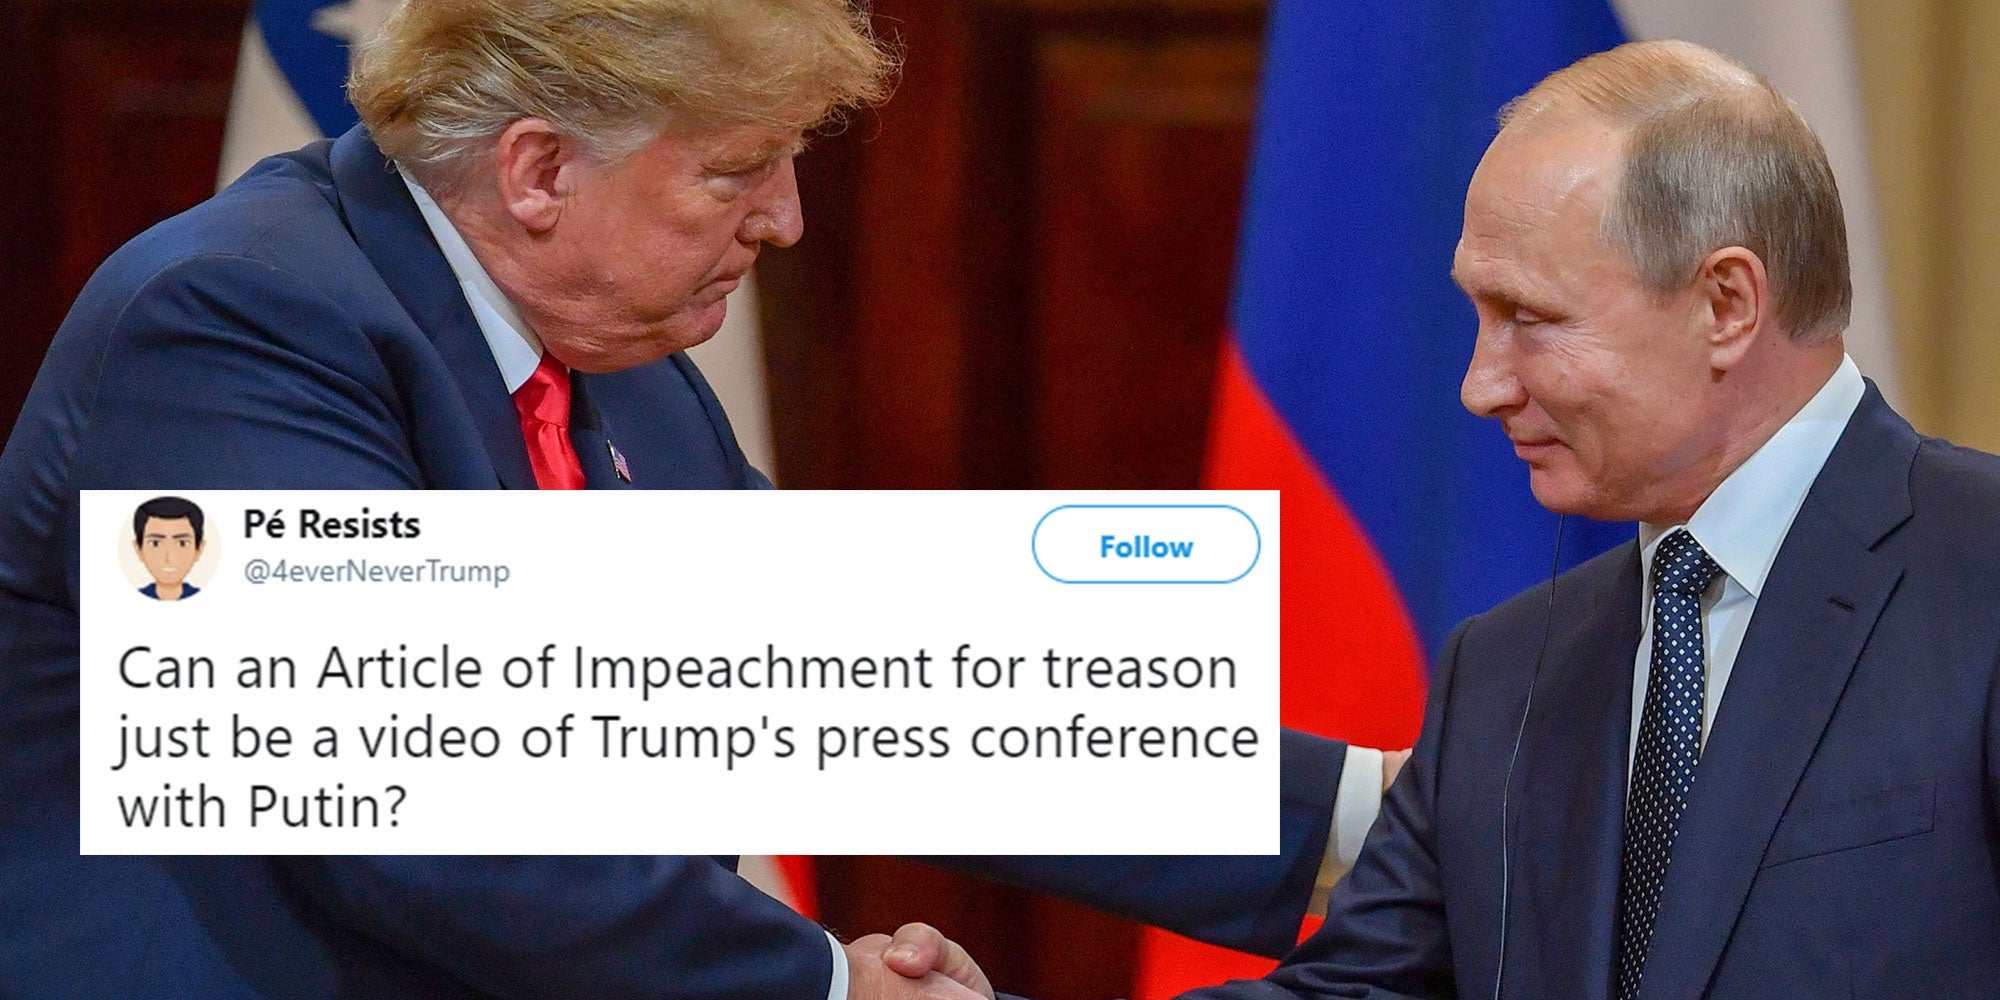 Trump Was Accused Of Treason After Putin Summit, But At